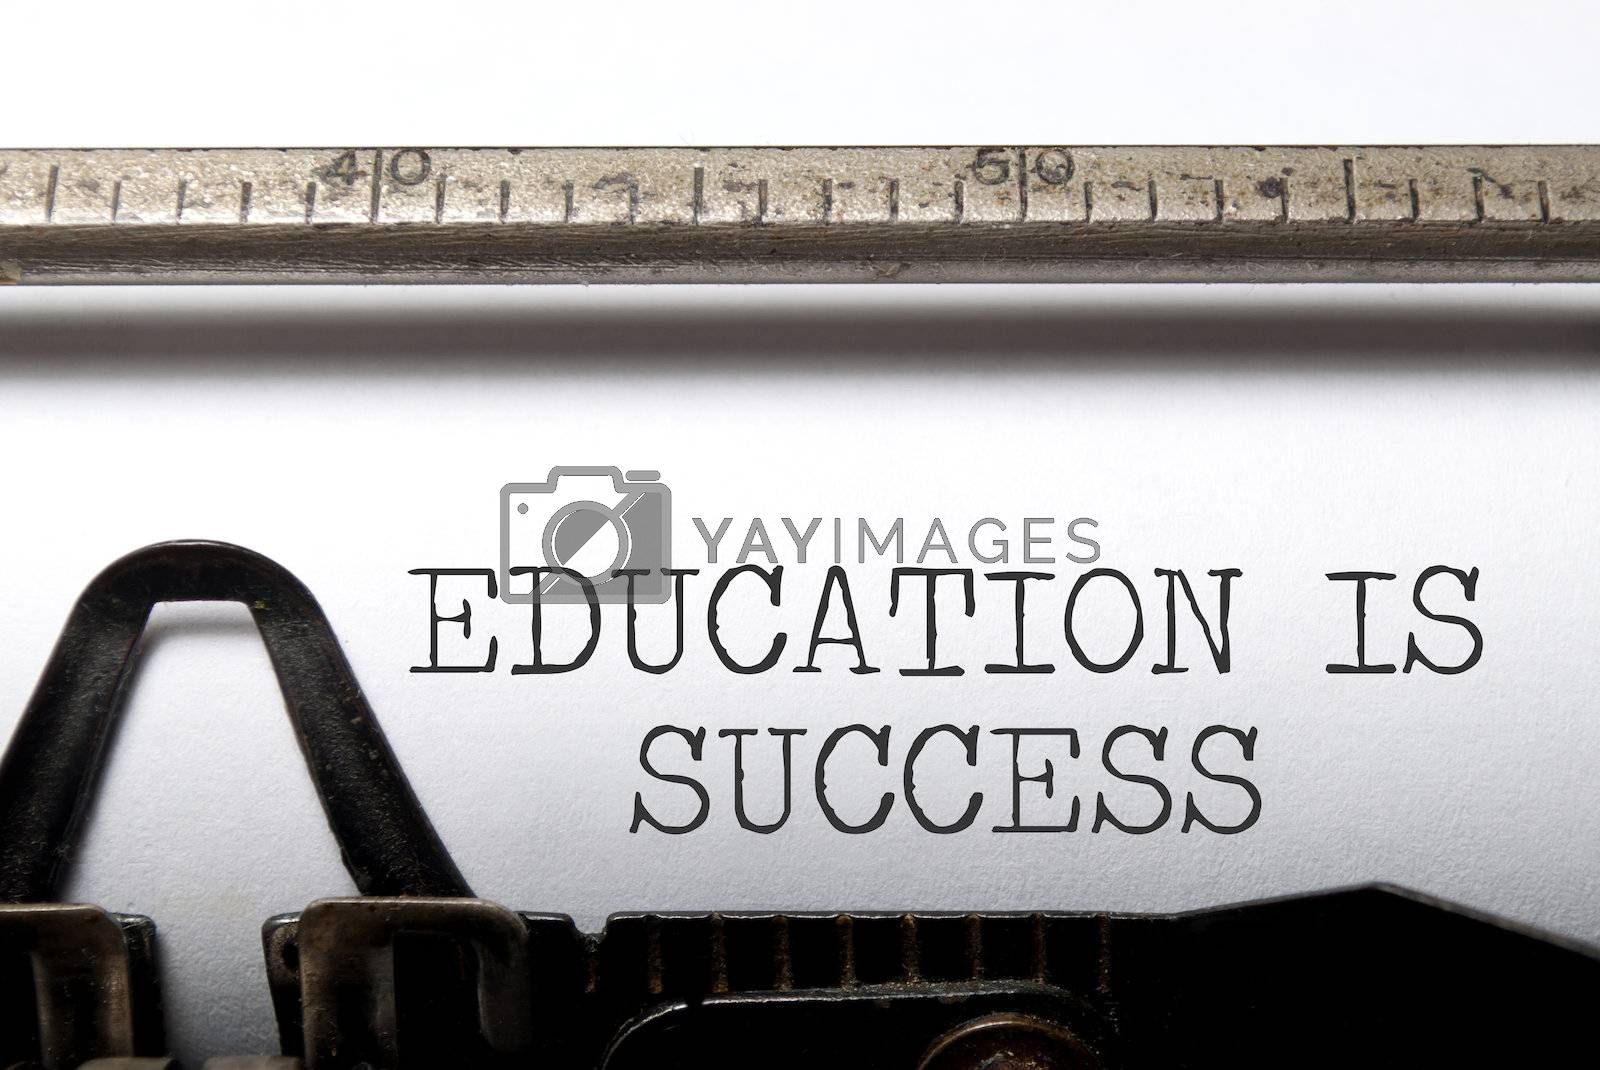 Education is success printed on a vintage typewriter